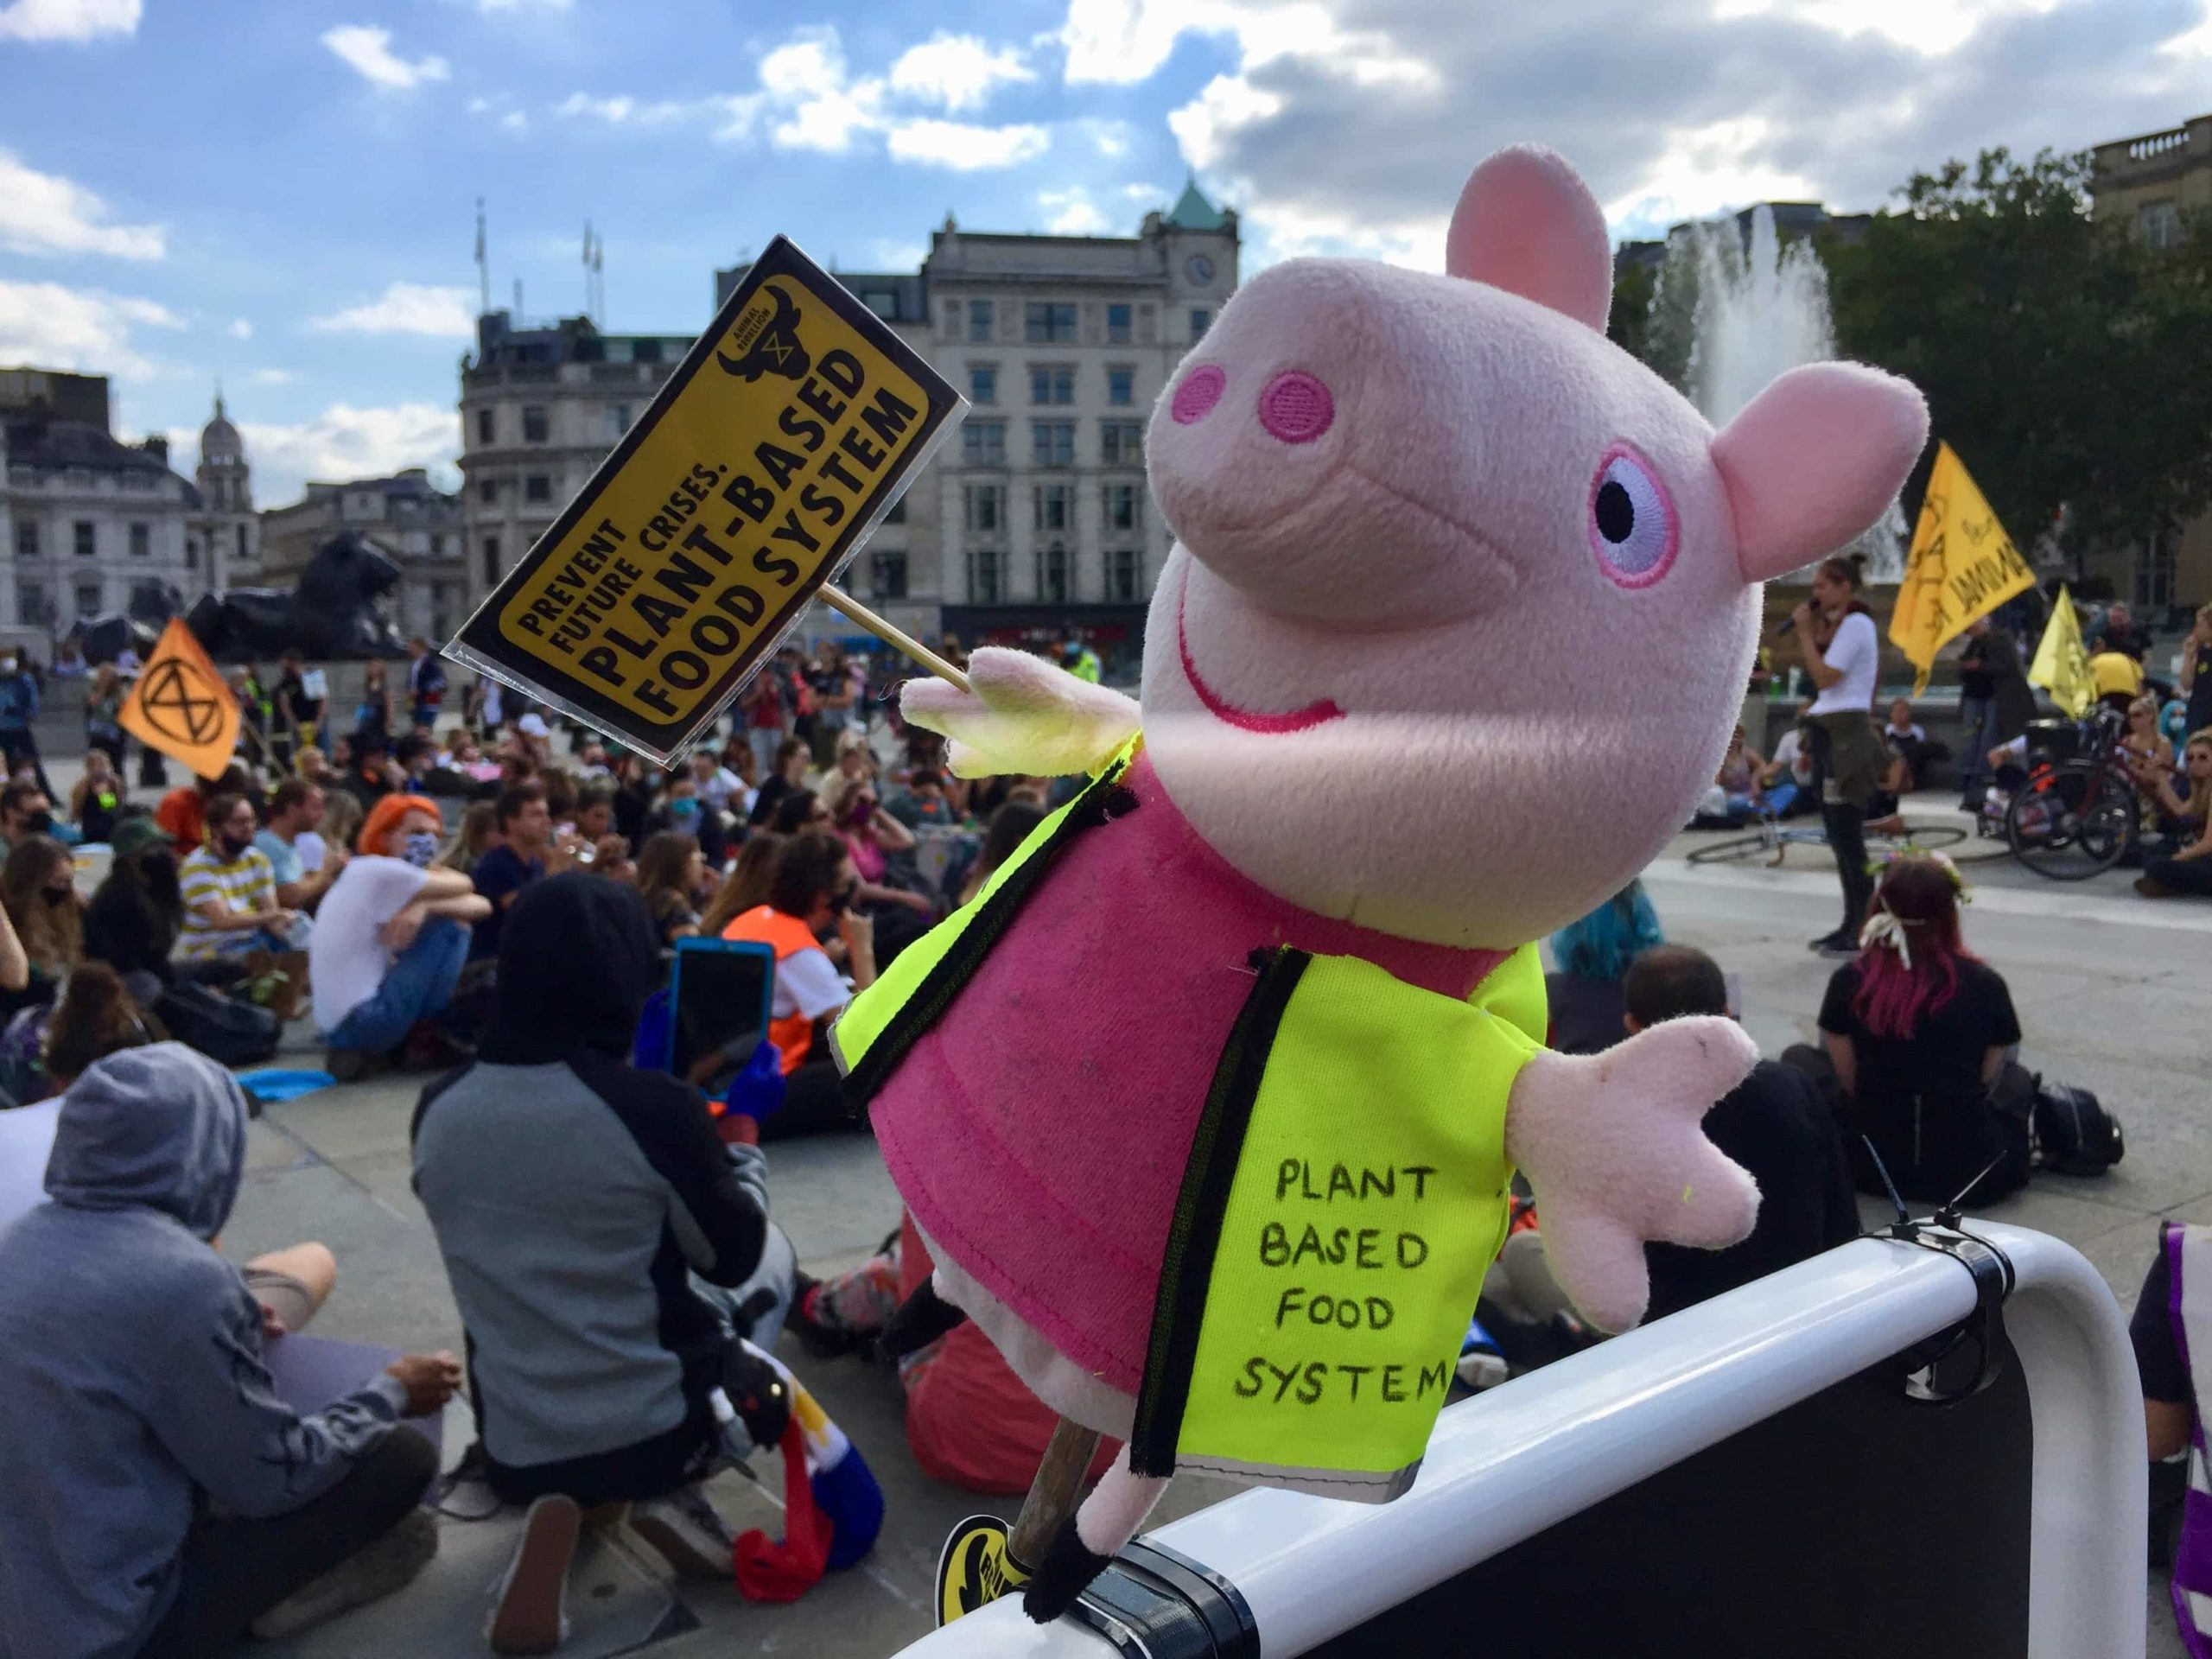 Pig with Plant Based Food System sign in London